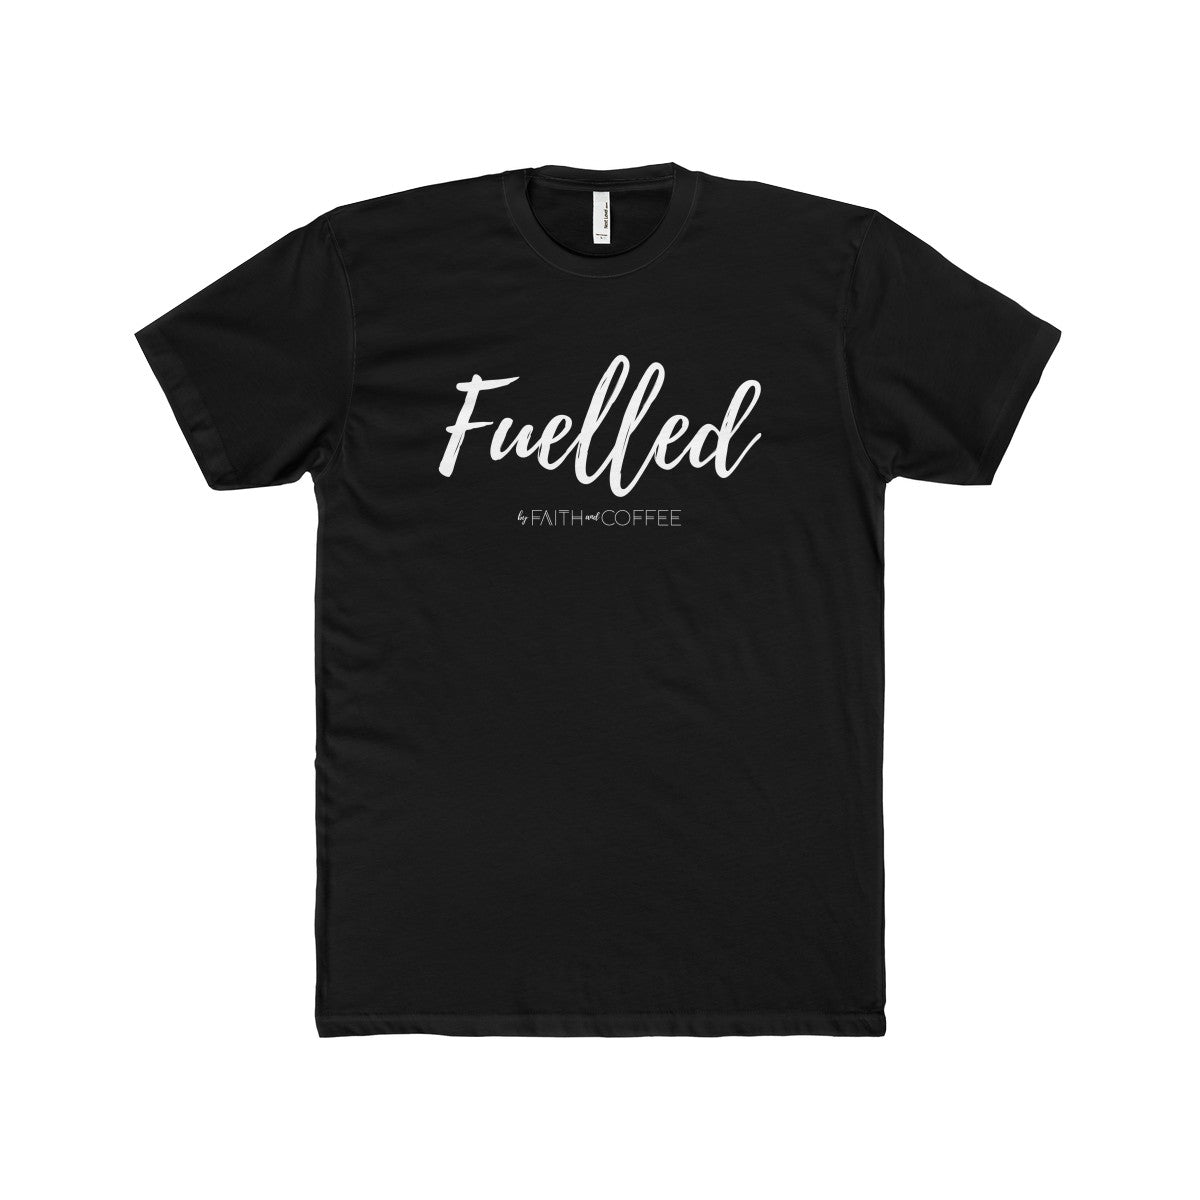 Faith + Coffee - Men's Cotton Crew Tee